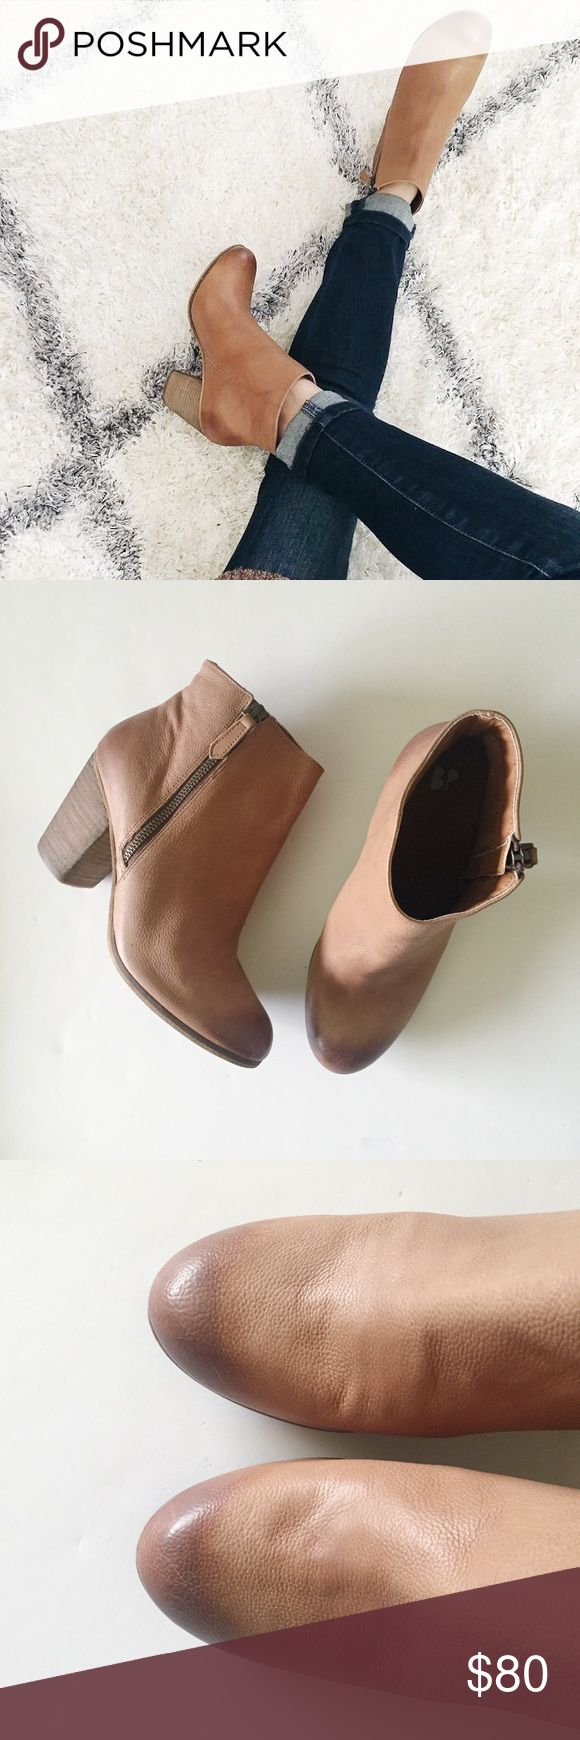 Tan Leather Ankle Booties A short side zipper accentuates the abbreviated style of a go-anywhere ankle bootie.  •Size 8.5  •New without box   •NO TRADES/HOLDS bp Shoes Ankle Boots & Booties